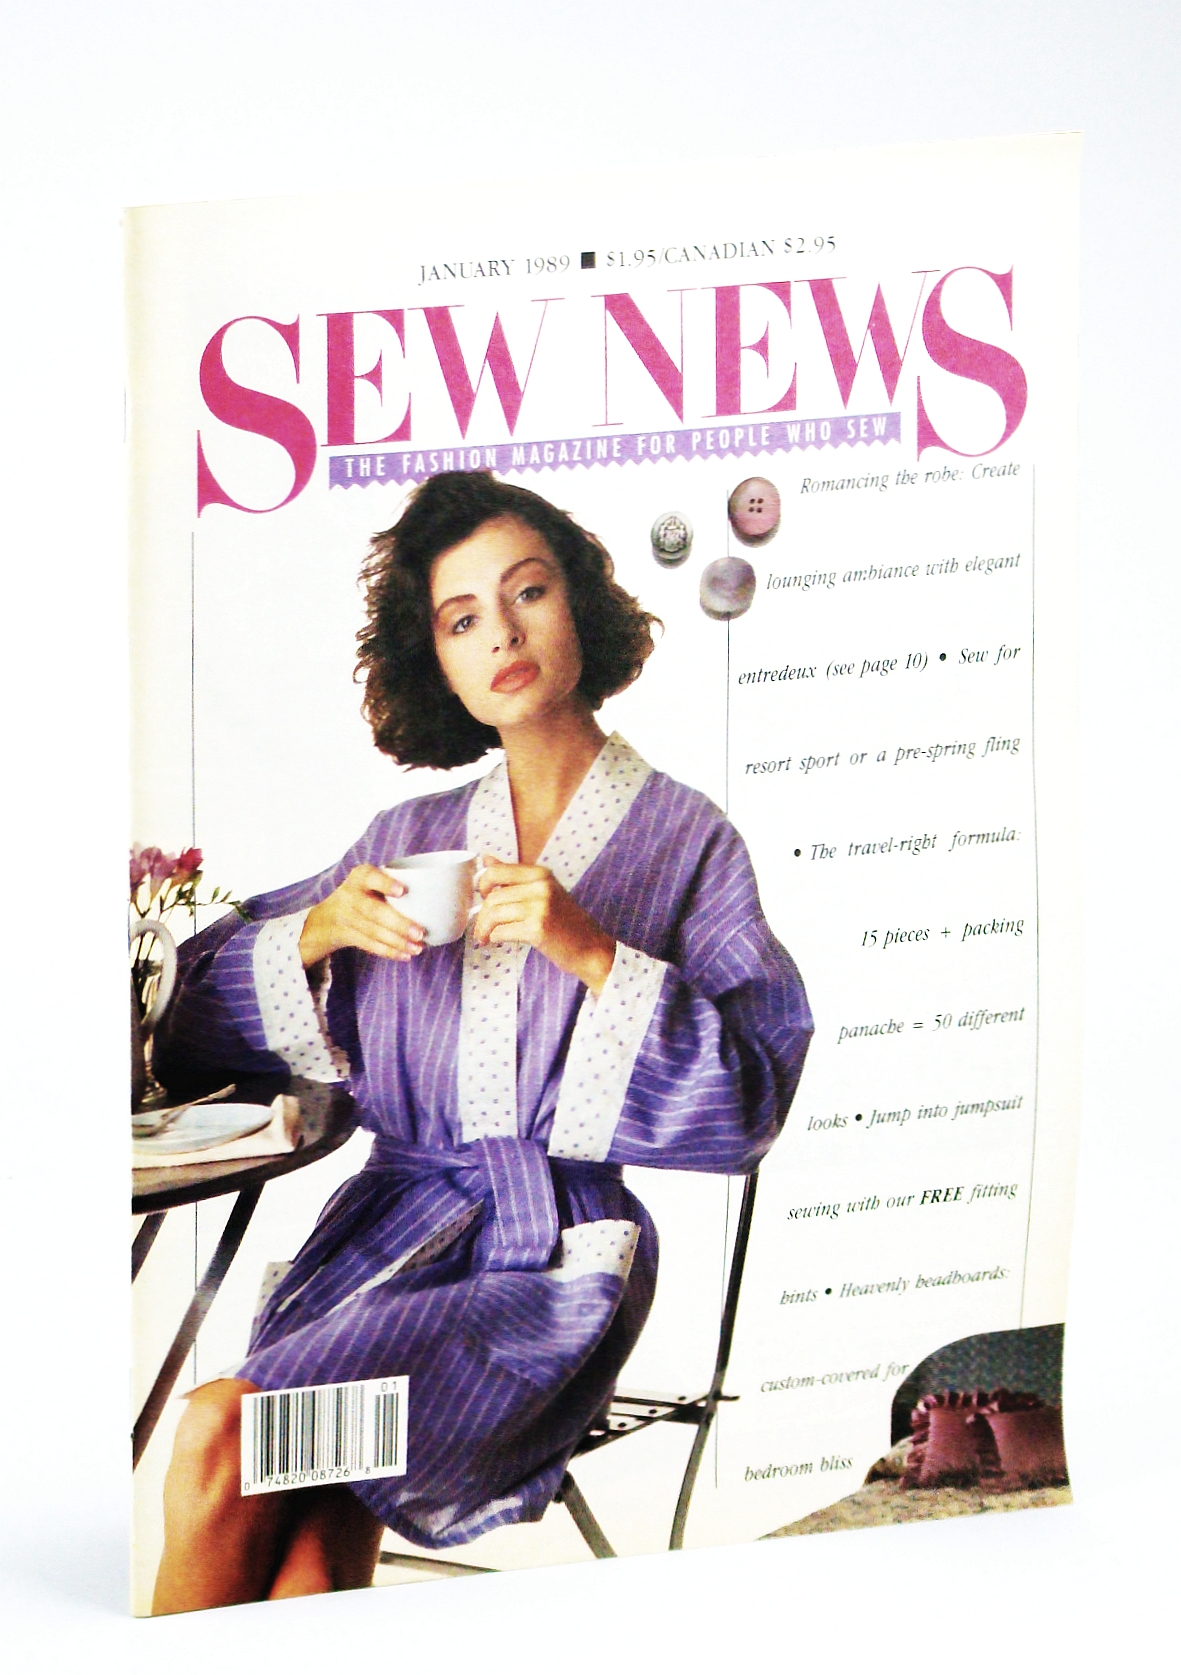 Image for Sew News: the Fashion Magazine for People Who Sew-January 1989 (No. 76)